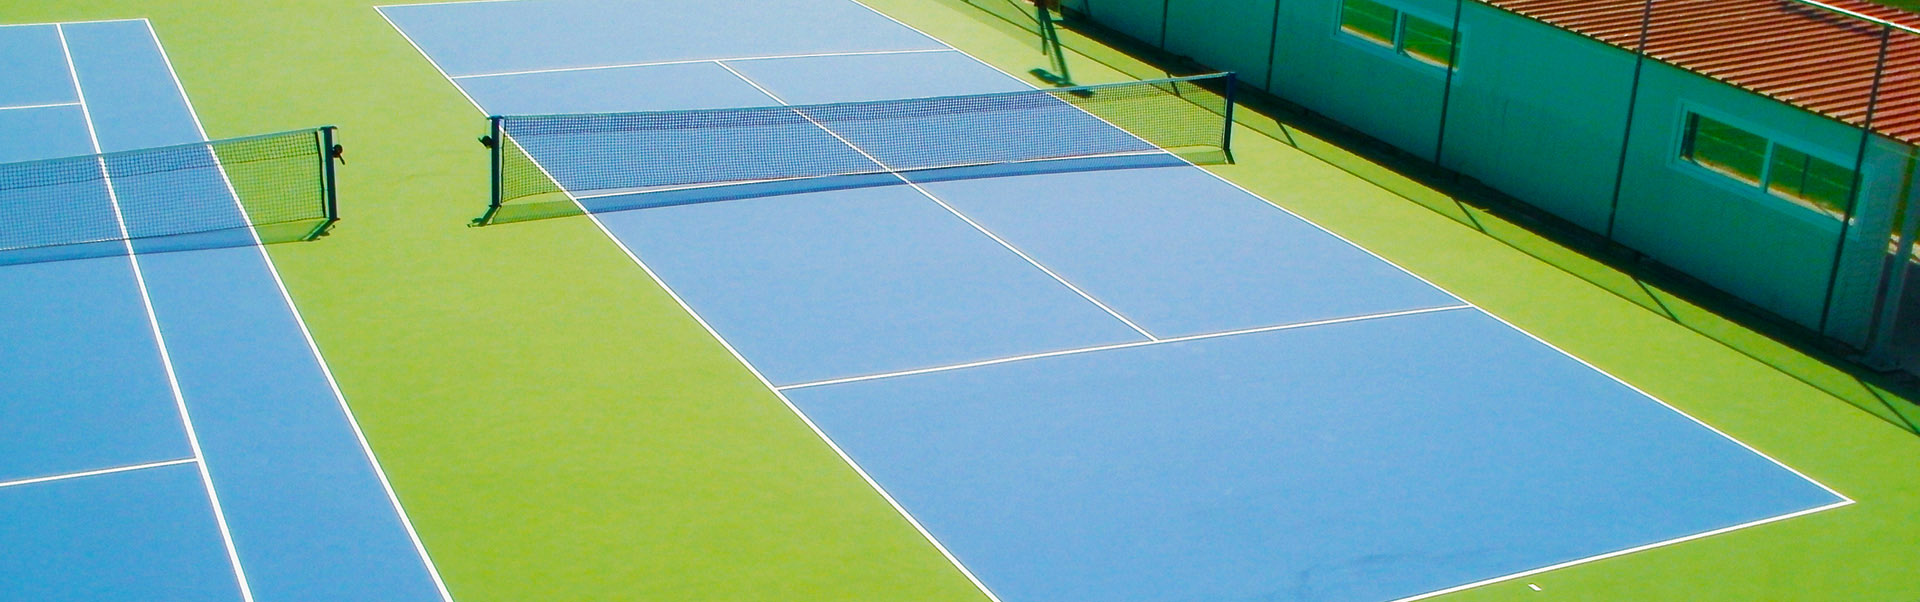 TENNIS COURT SLIDER.jpg